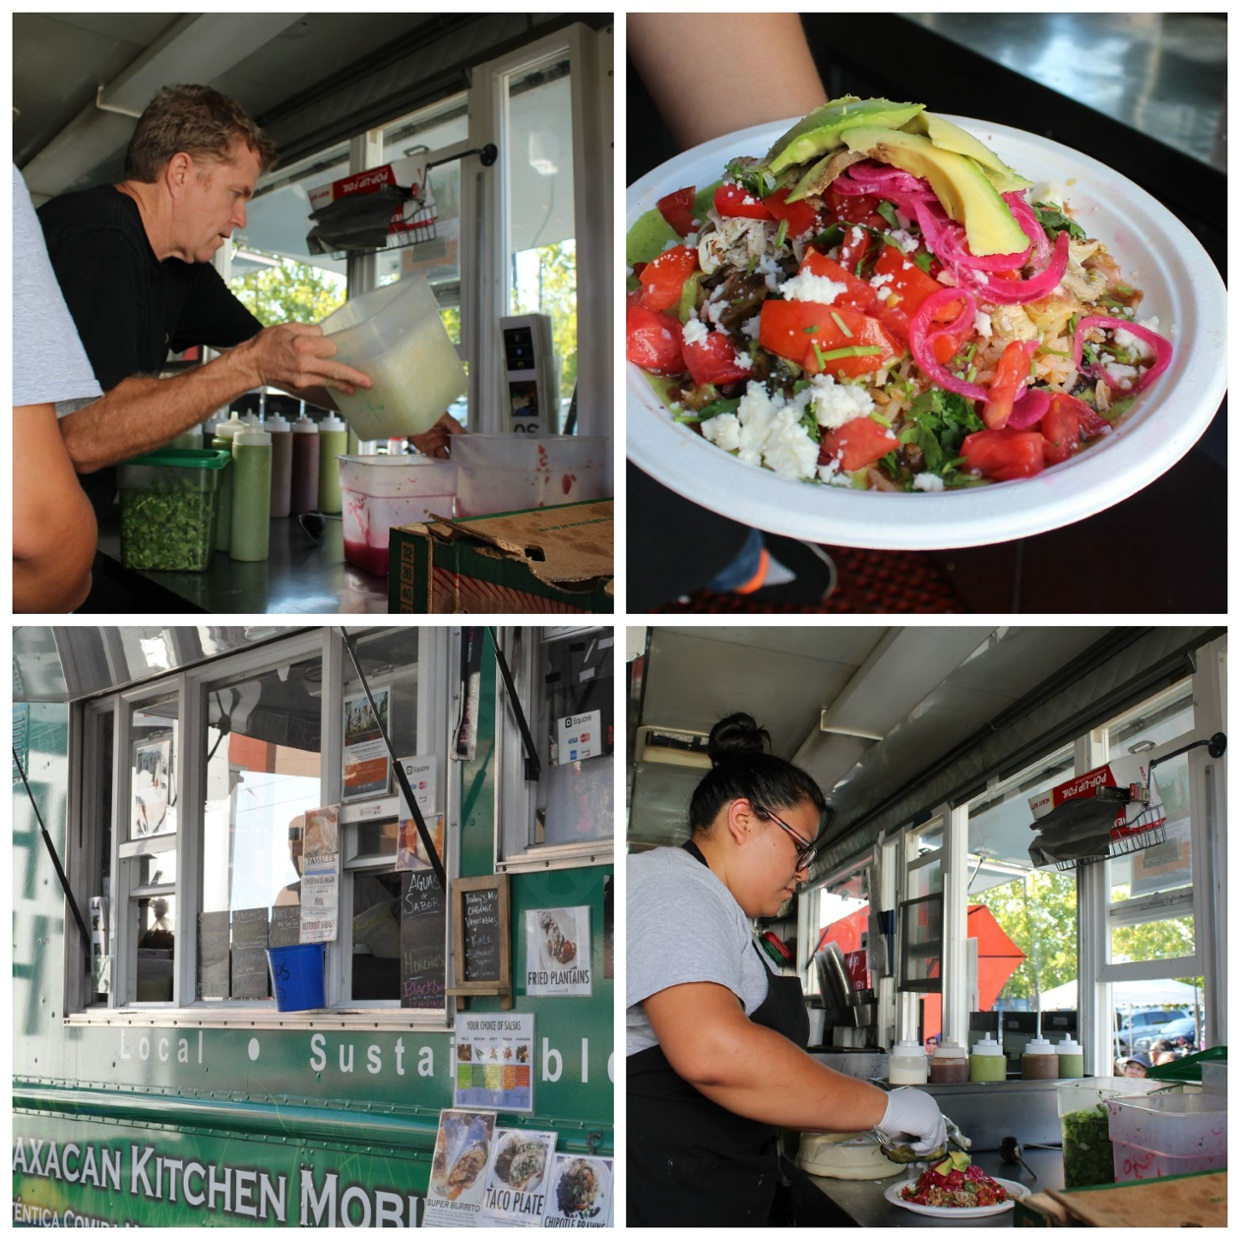 Oaxacan Kitchen Mobile Off The Grid